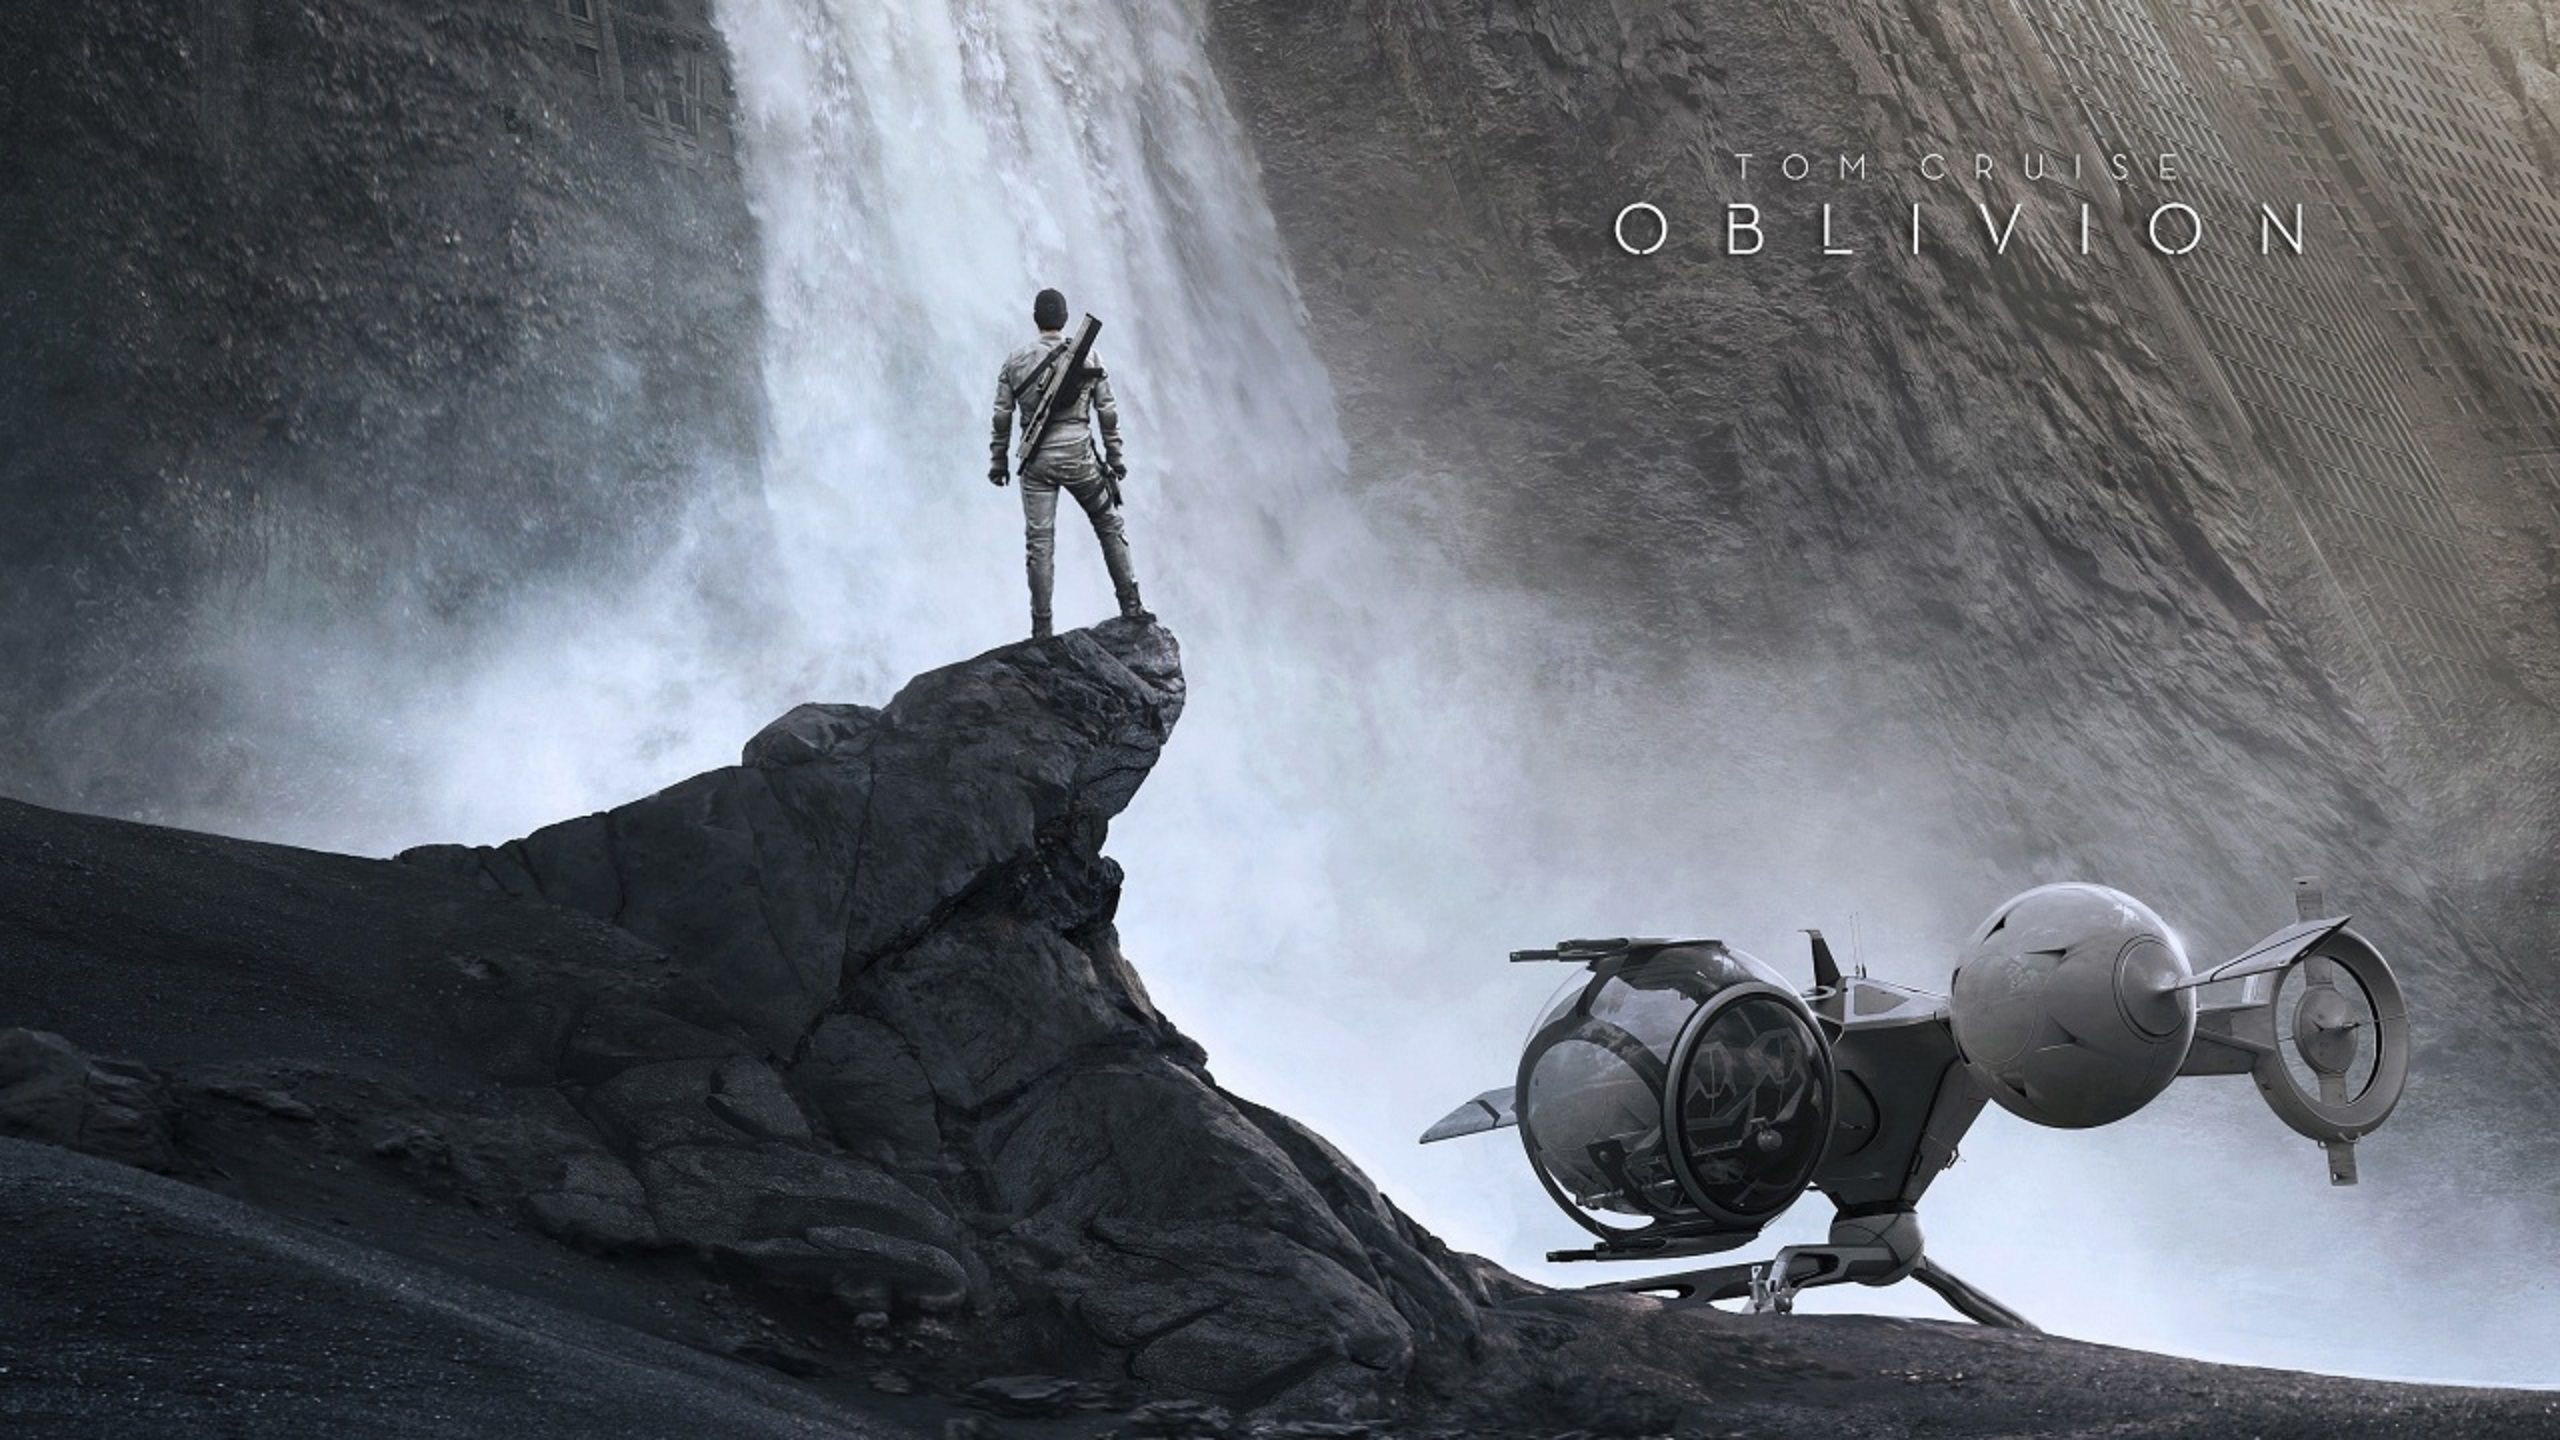 Oblivion (2013) wallpaper and poster landscape waterfall and spaceship